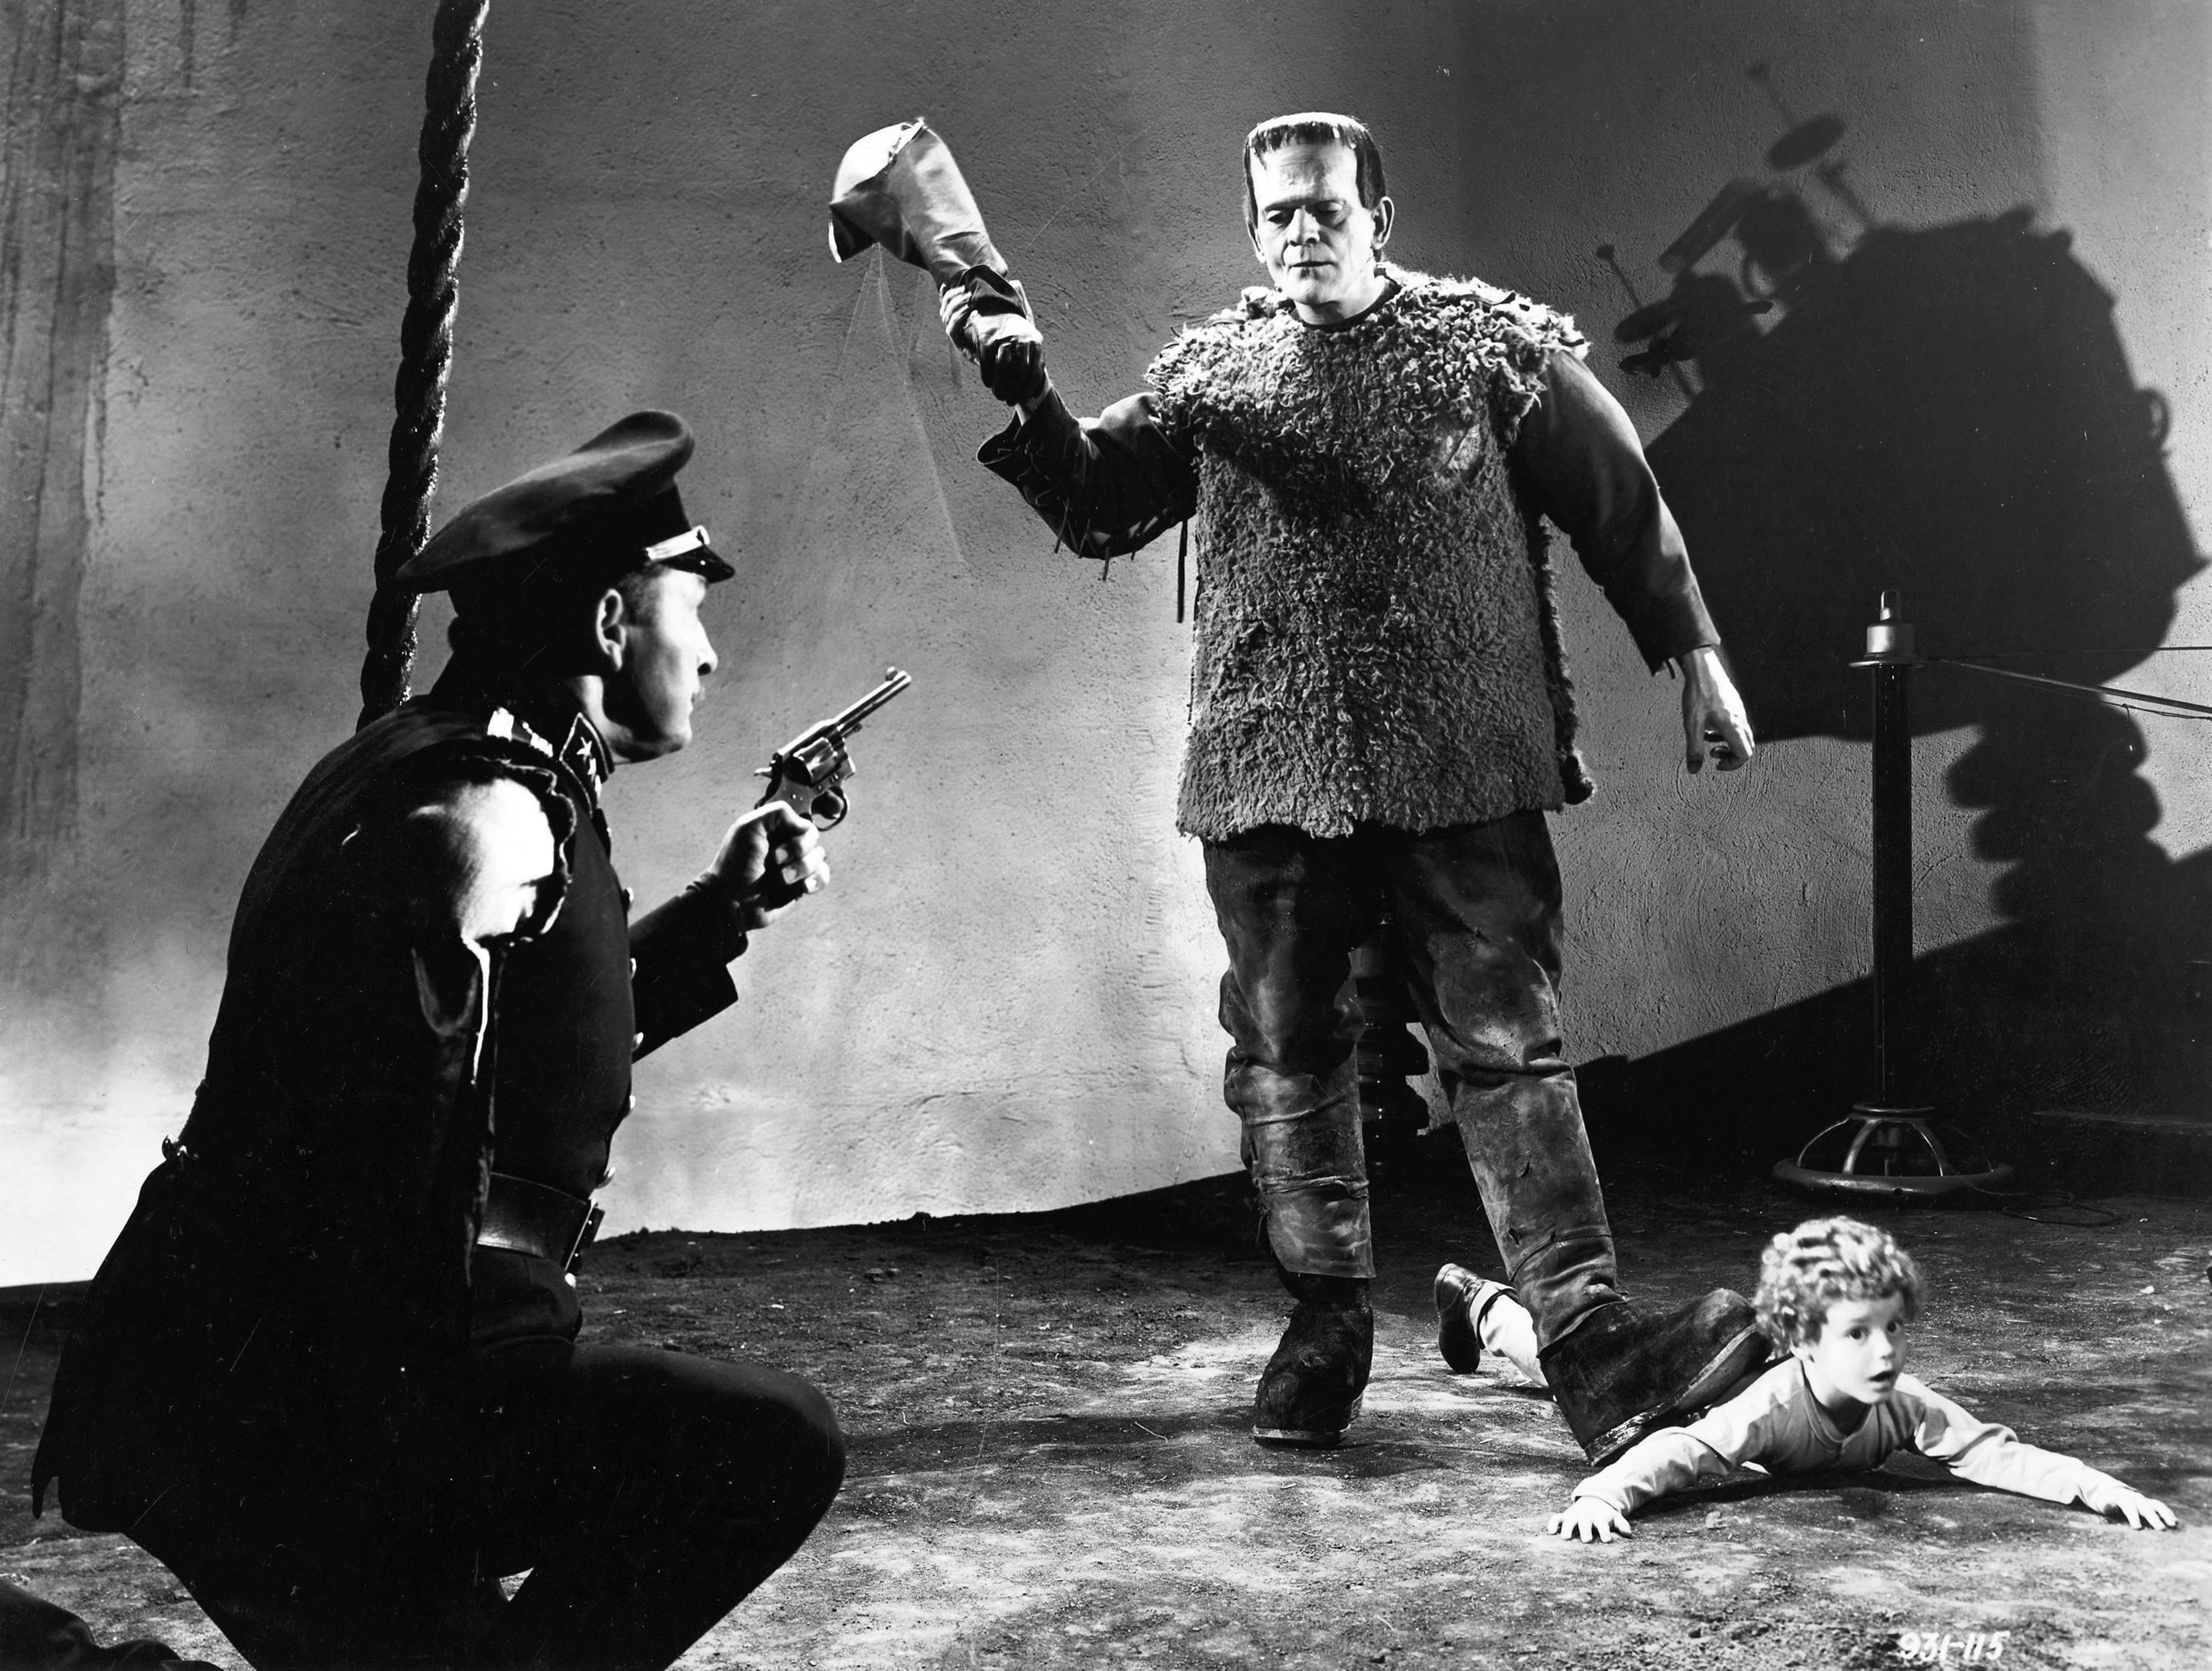 (l to r) Inspector Krogh (Lionel Atwill) attempts to stop the monster (Boris Karloff) as it threatens Frankenstein's son (Donnie Duggan) in Son of Frankenstein (1939)